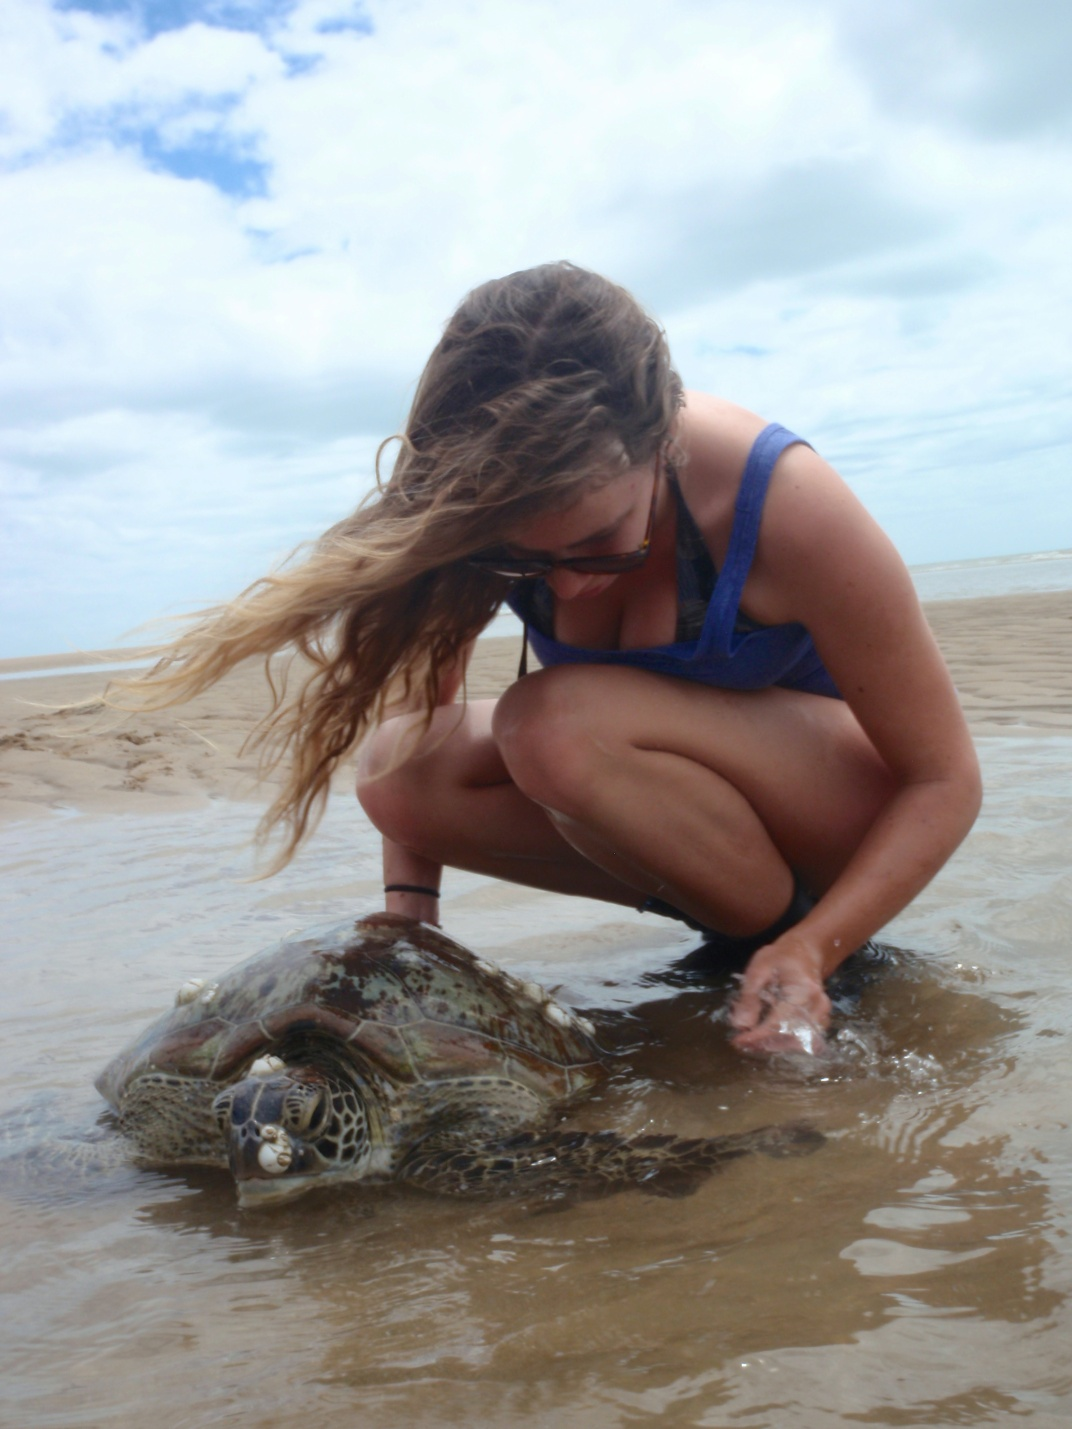 Turtle catching at Toolakea Beach